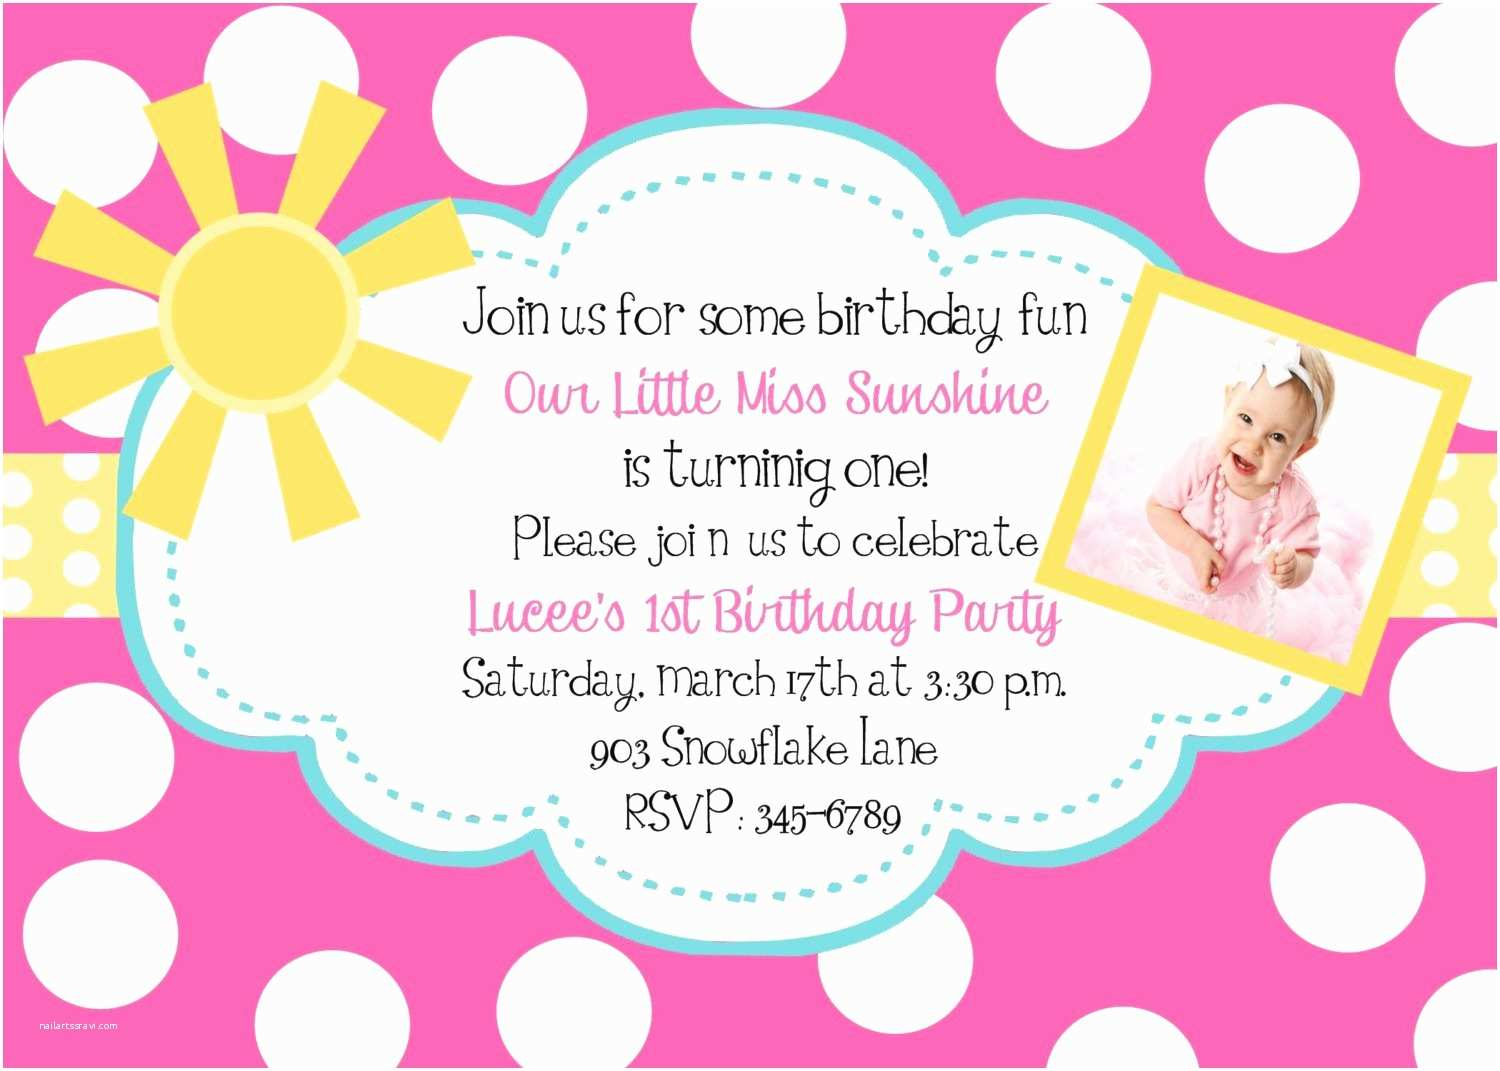 Custom Birthday Invitations Birthday Invitation Card Custom Birthday Party